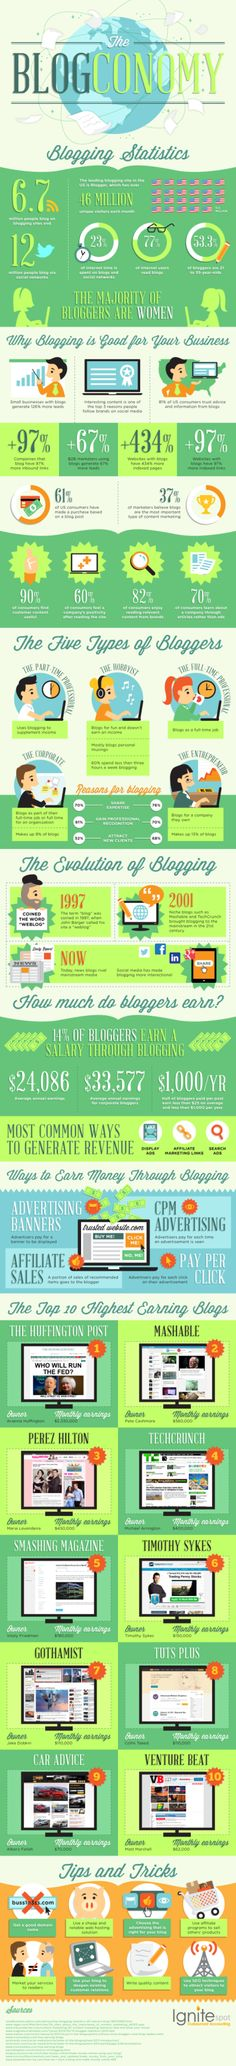 Social Media Marketing: Why Your Business Needs a Blog image The blogconomy infographic 640x5604 jbwmpq